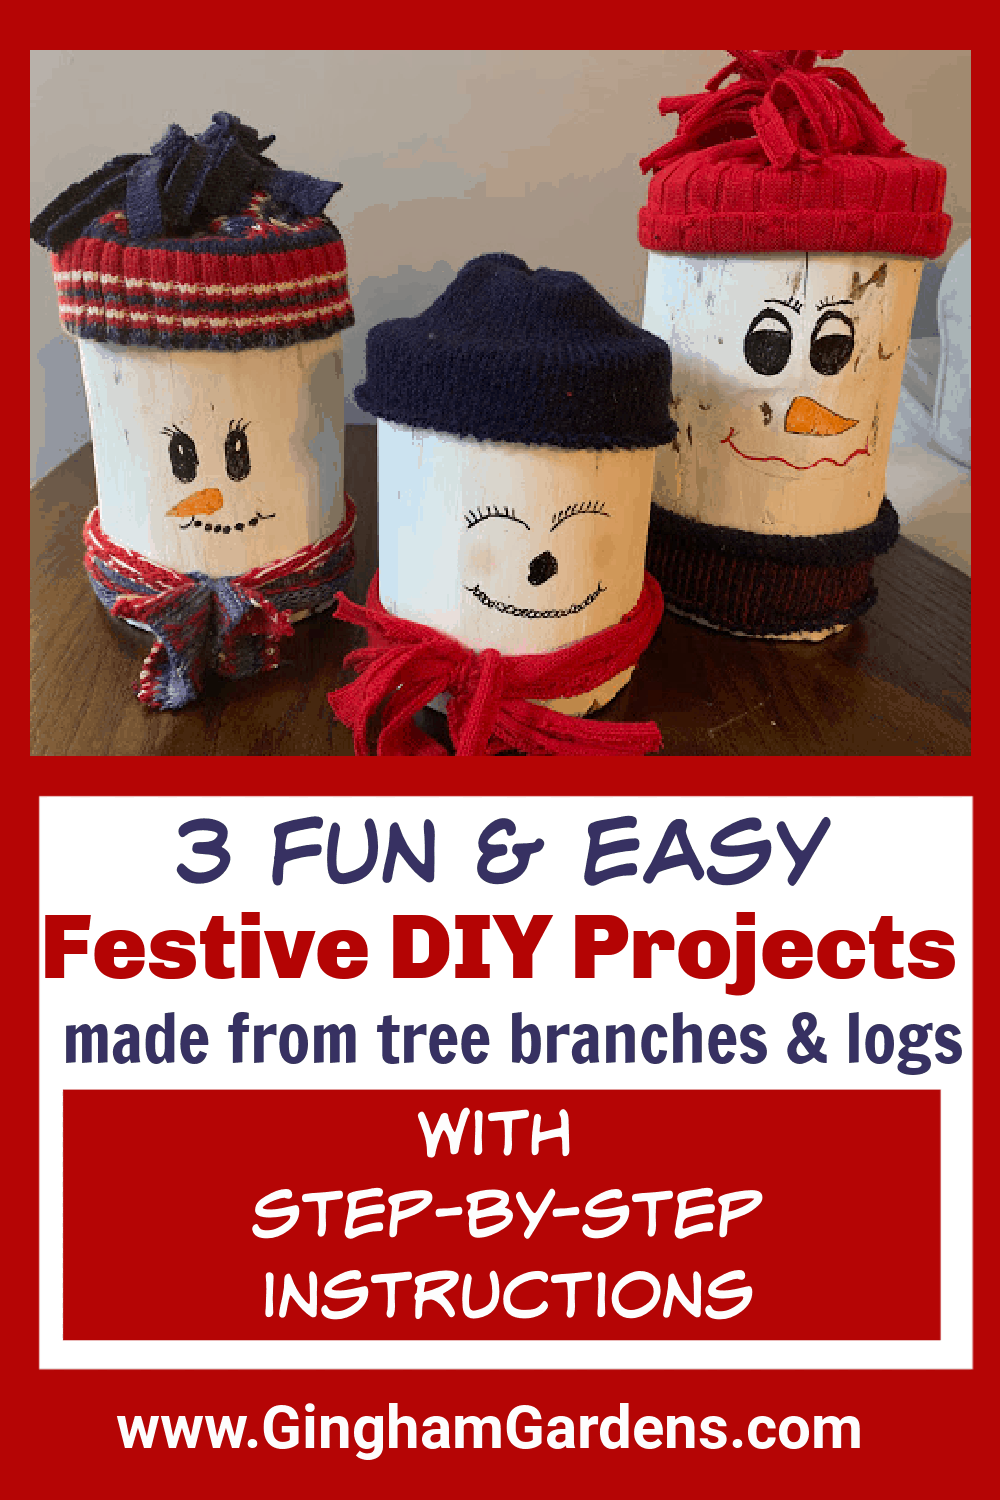 Image of Log Snowmen with text overlay - 3 Fun & Easy Festive DIY Projects